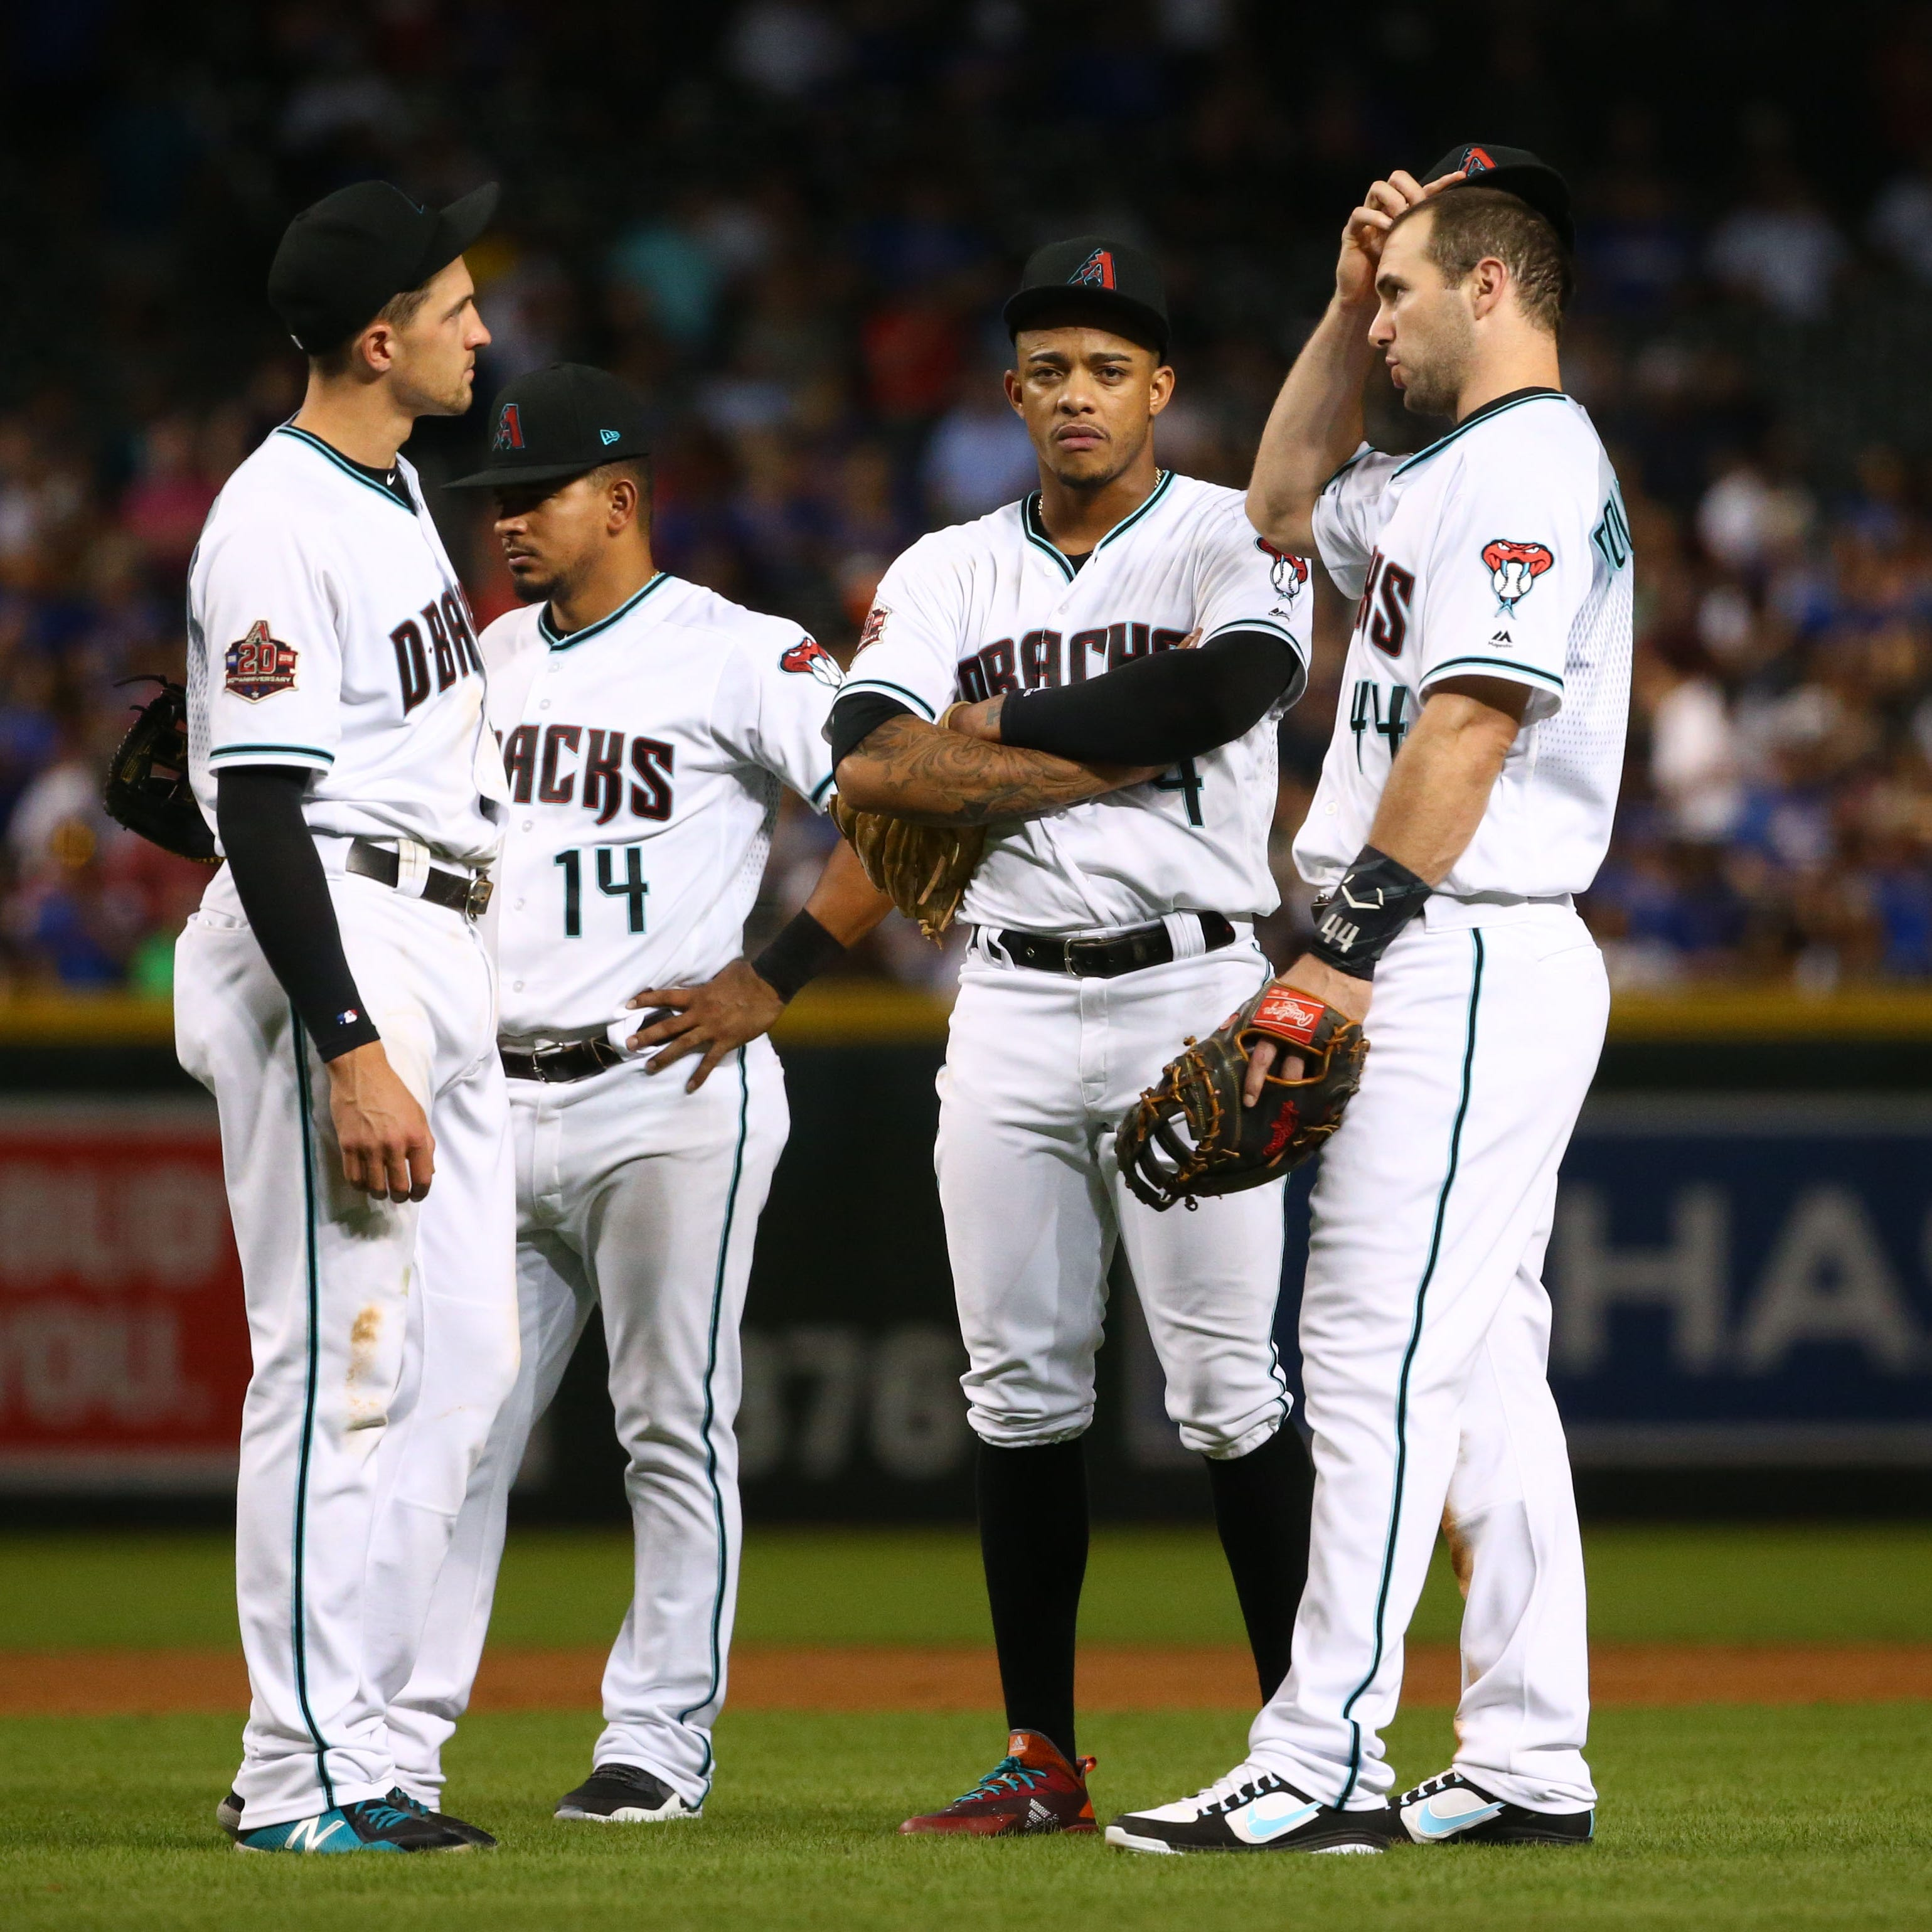 Diamondbacks fall again, say they haven't packed it in